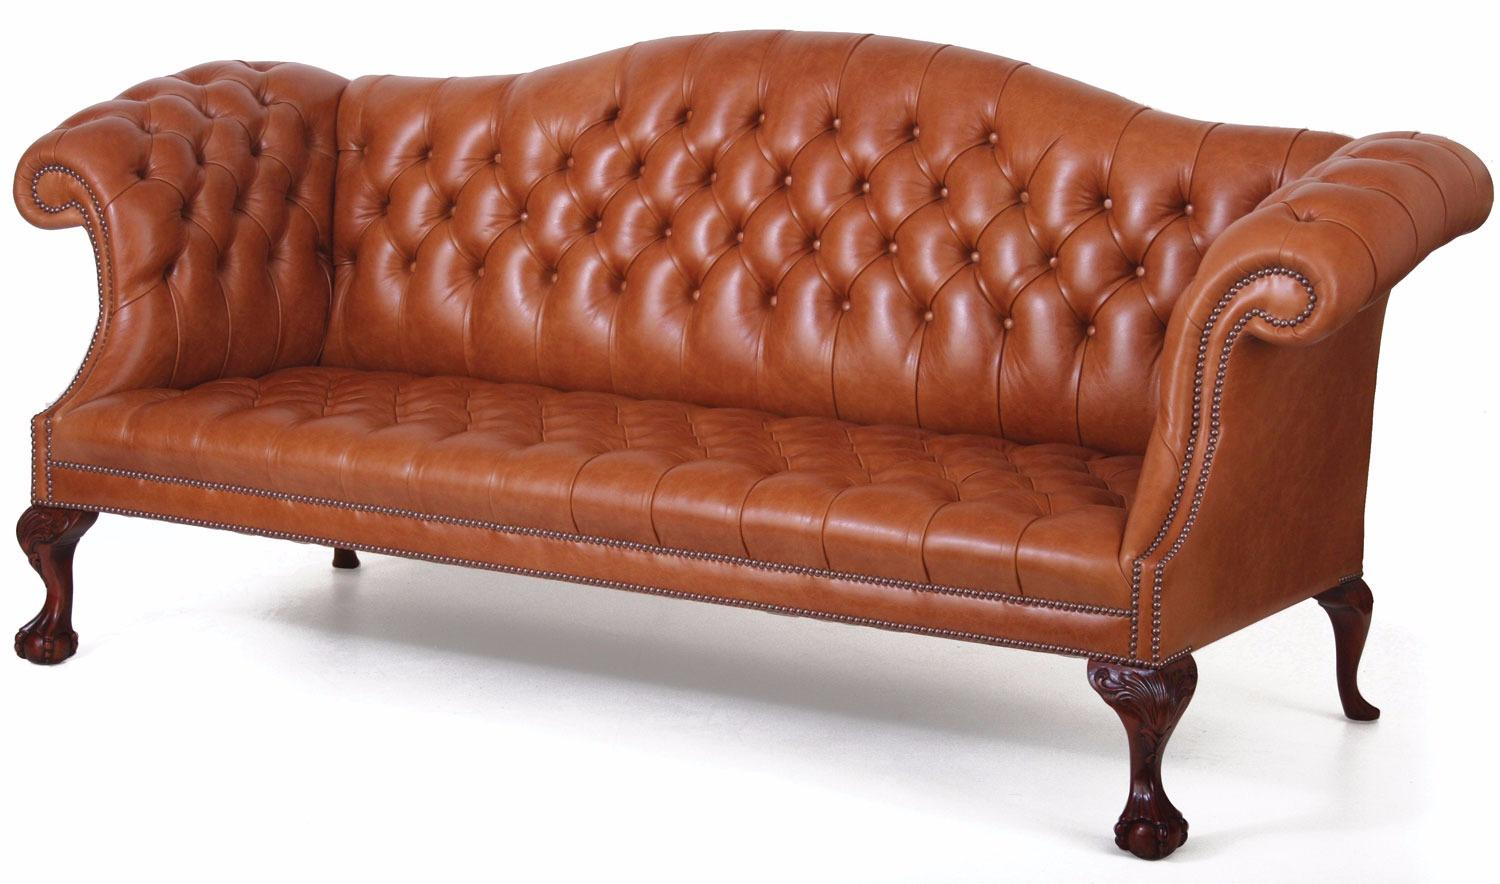 Chatsworth 3 Seat Buttoned Leather Sofa Leather Sofas In Stock From Brights Of Nettlebed